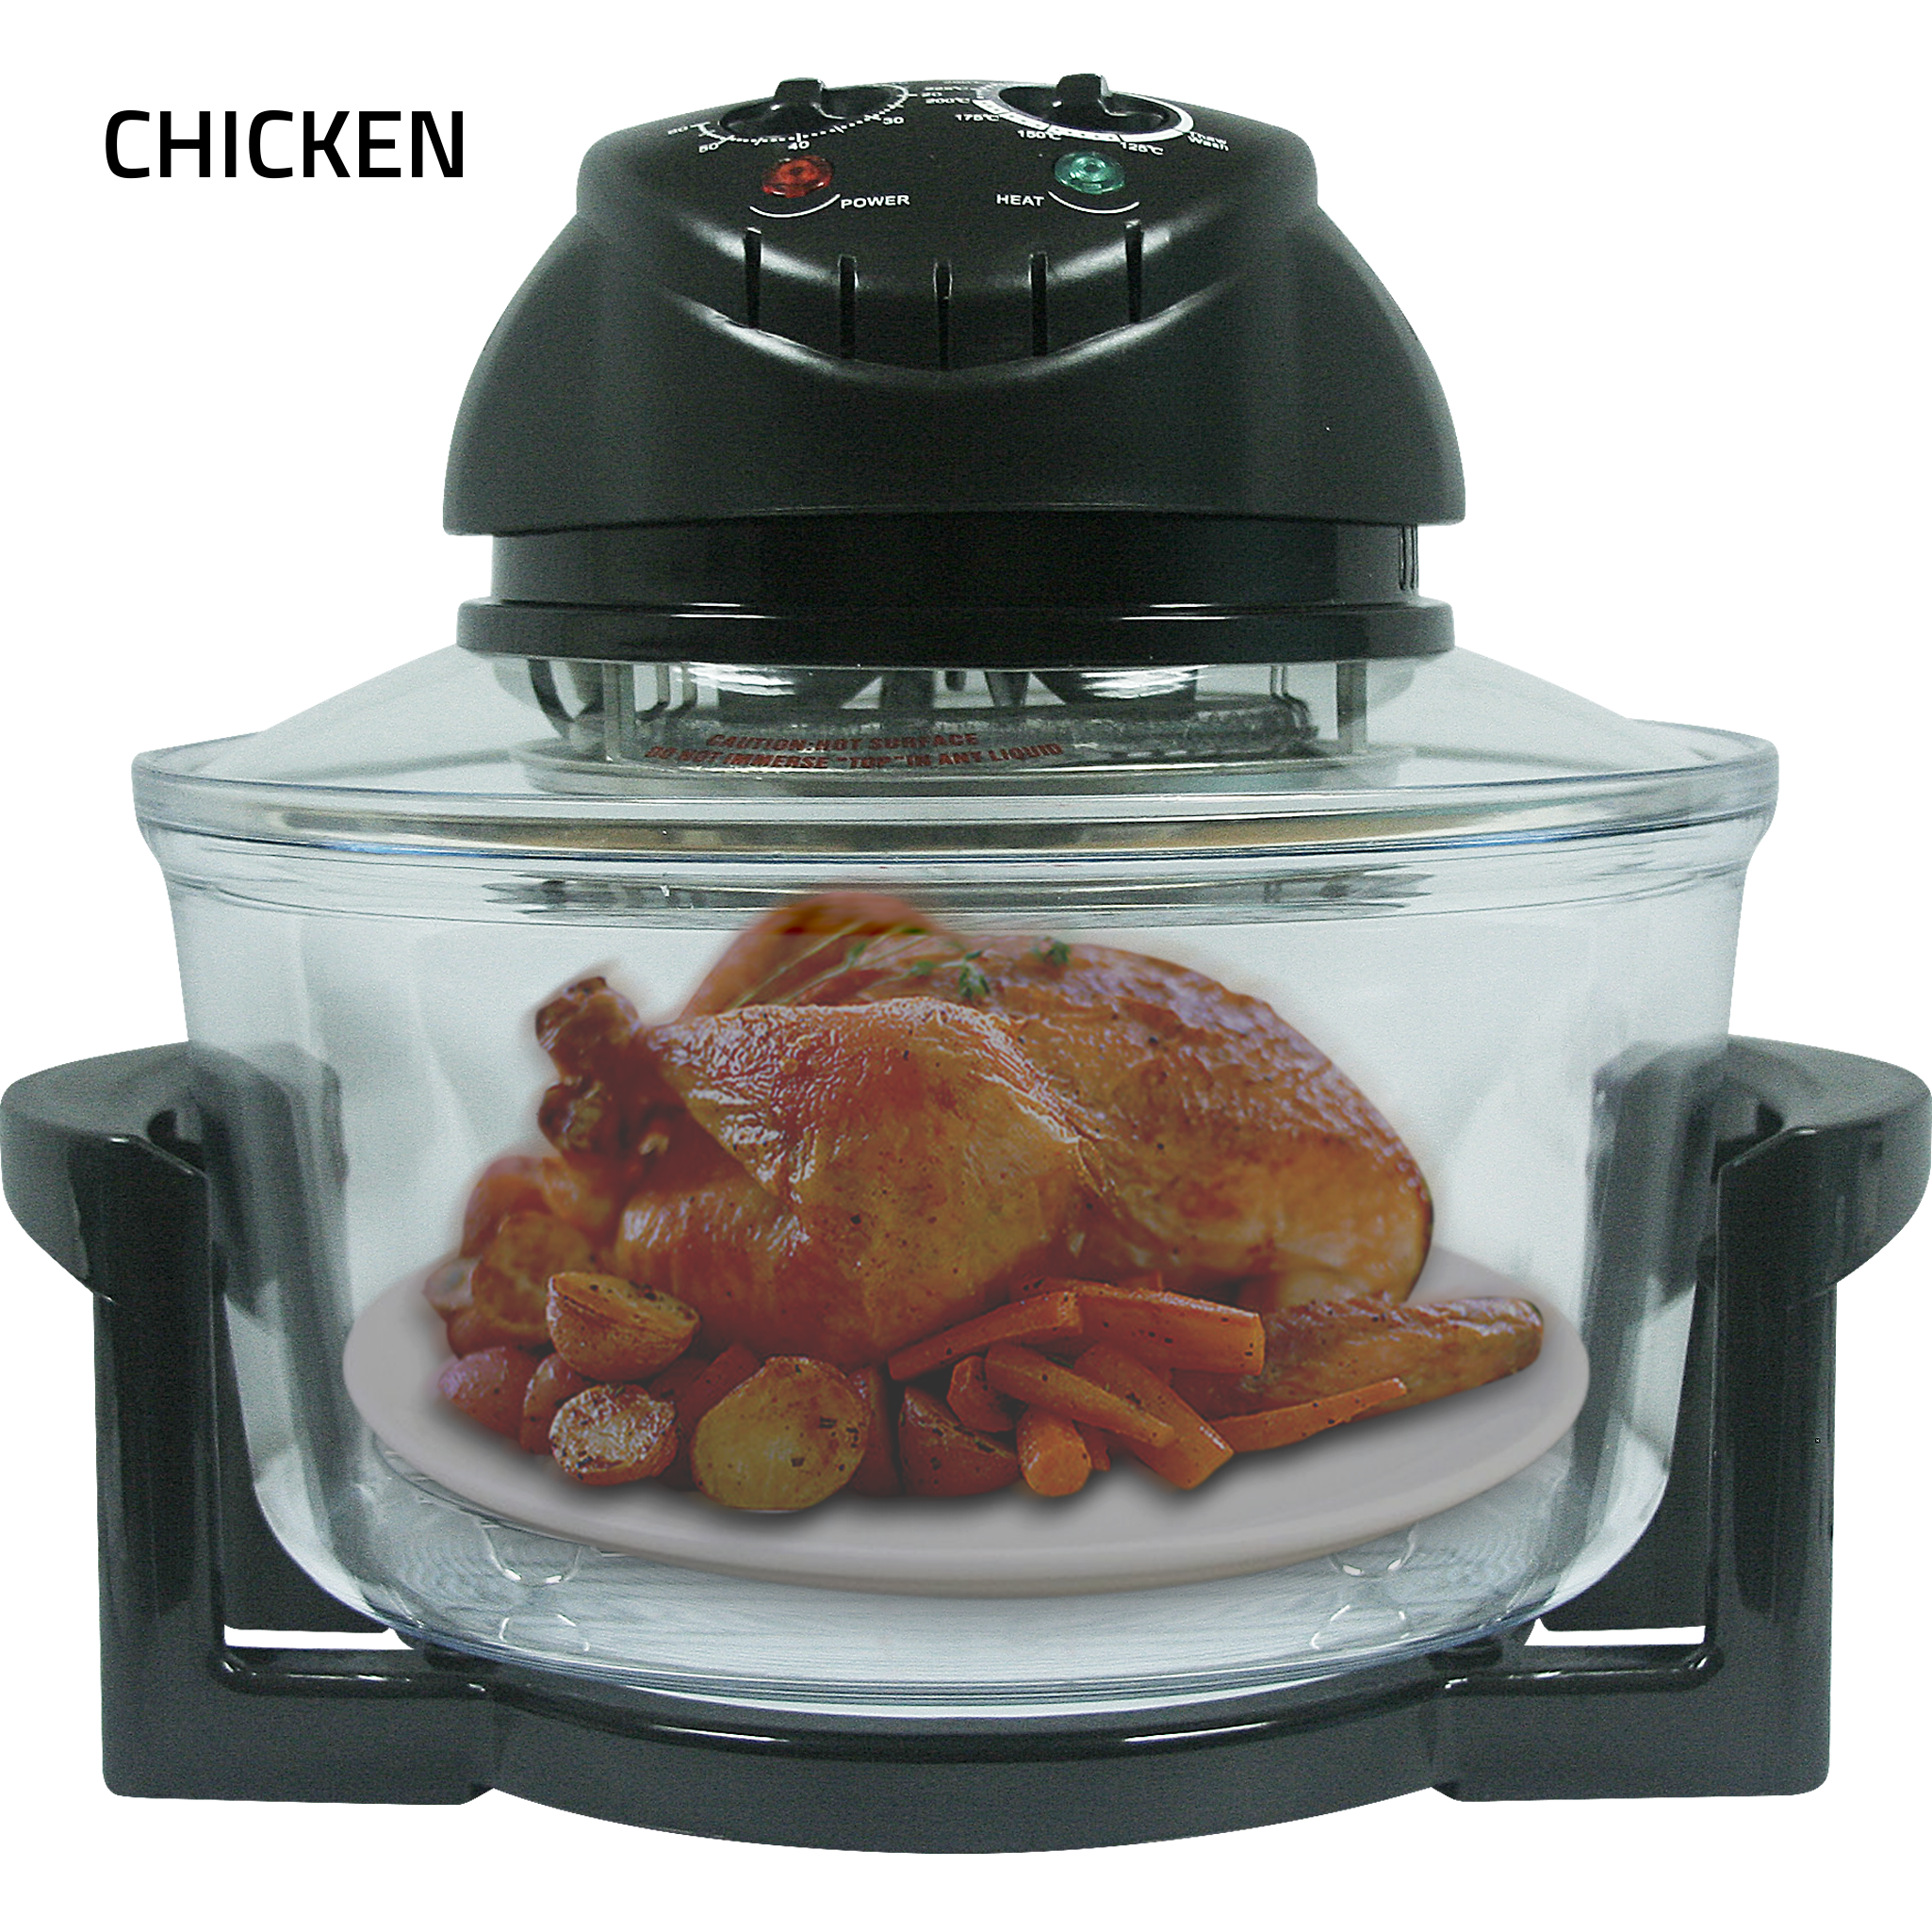 Fukuda FTB101 Turbo Broiler Halogen Oven With Extended